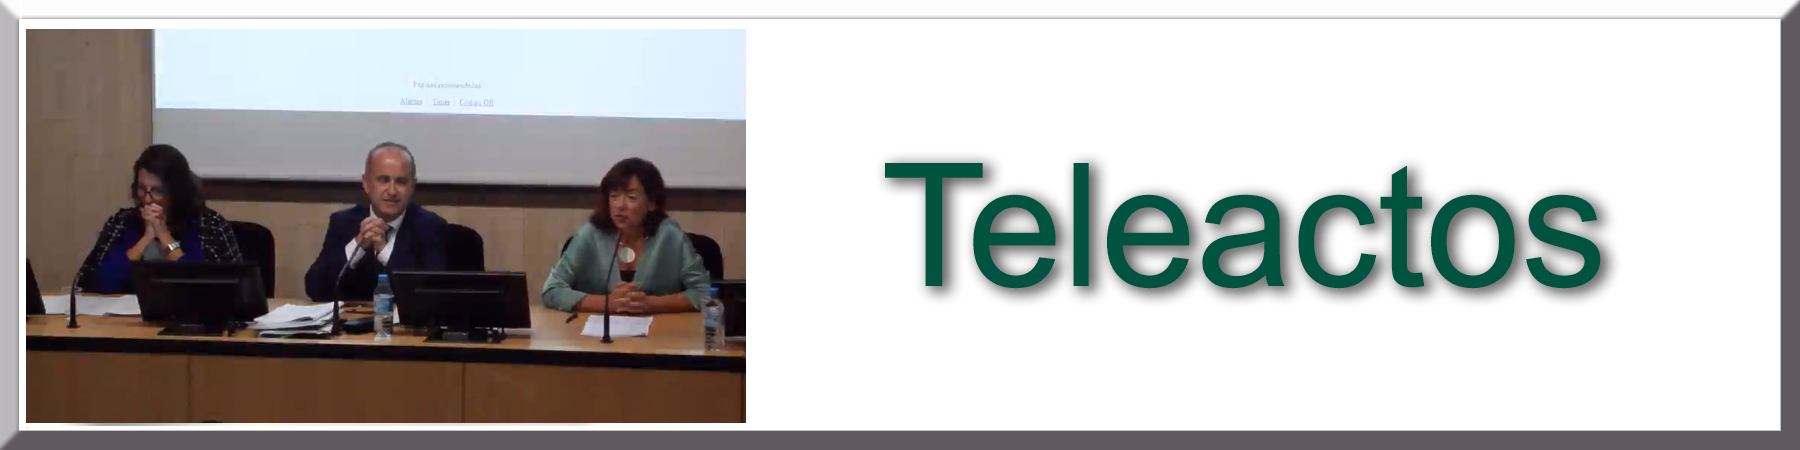 Canal UNED Teleactos